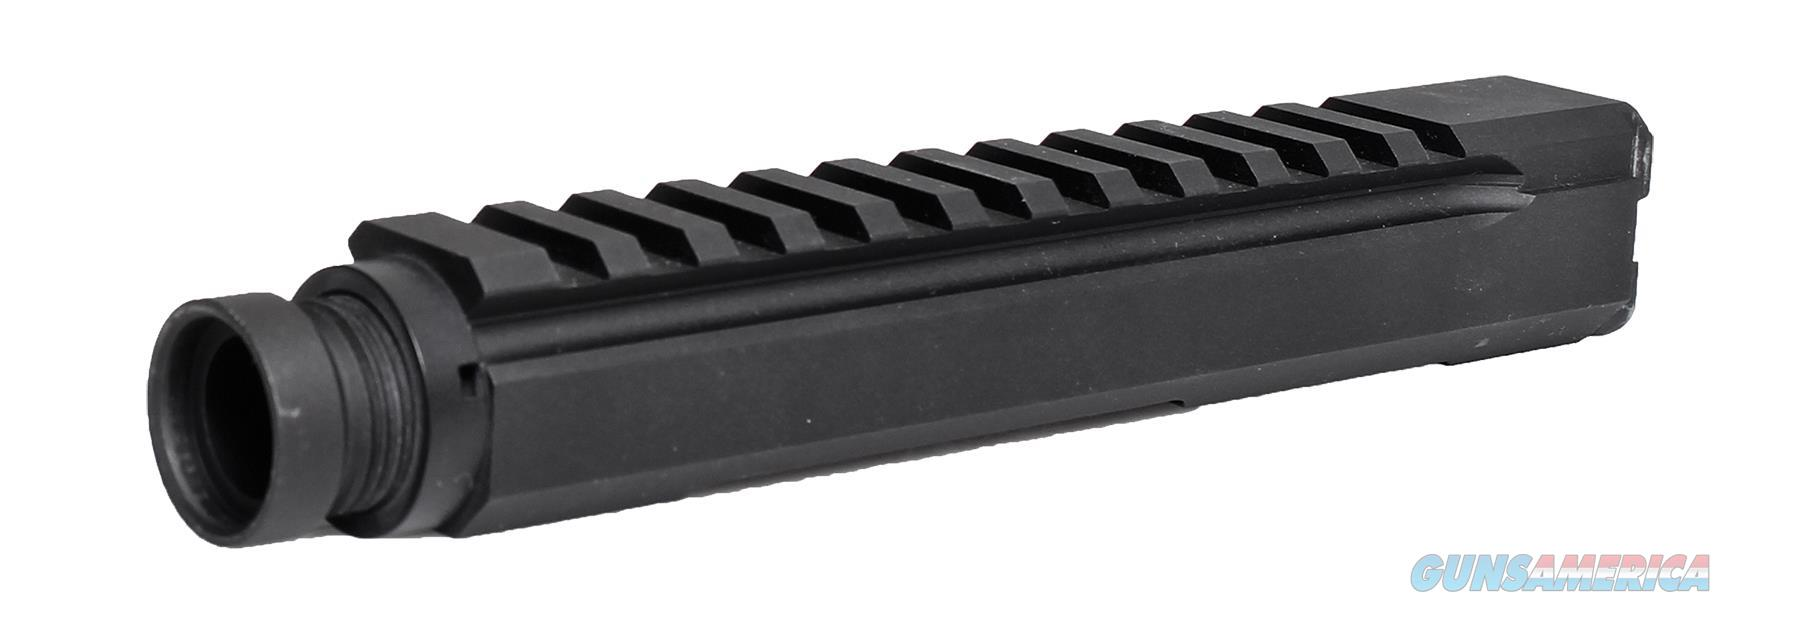 "Troy Ind Sraiak1t0bt0 Ak47 Top Rail Ak-47 7.26/39 Aluminum 5"" SRAIAK1T0BT0  Non-Guns > Gun Parts > Misc > Rifles"